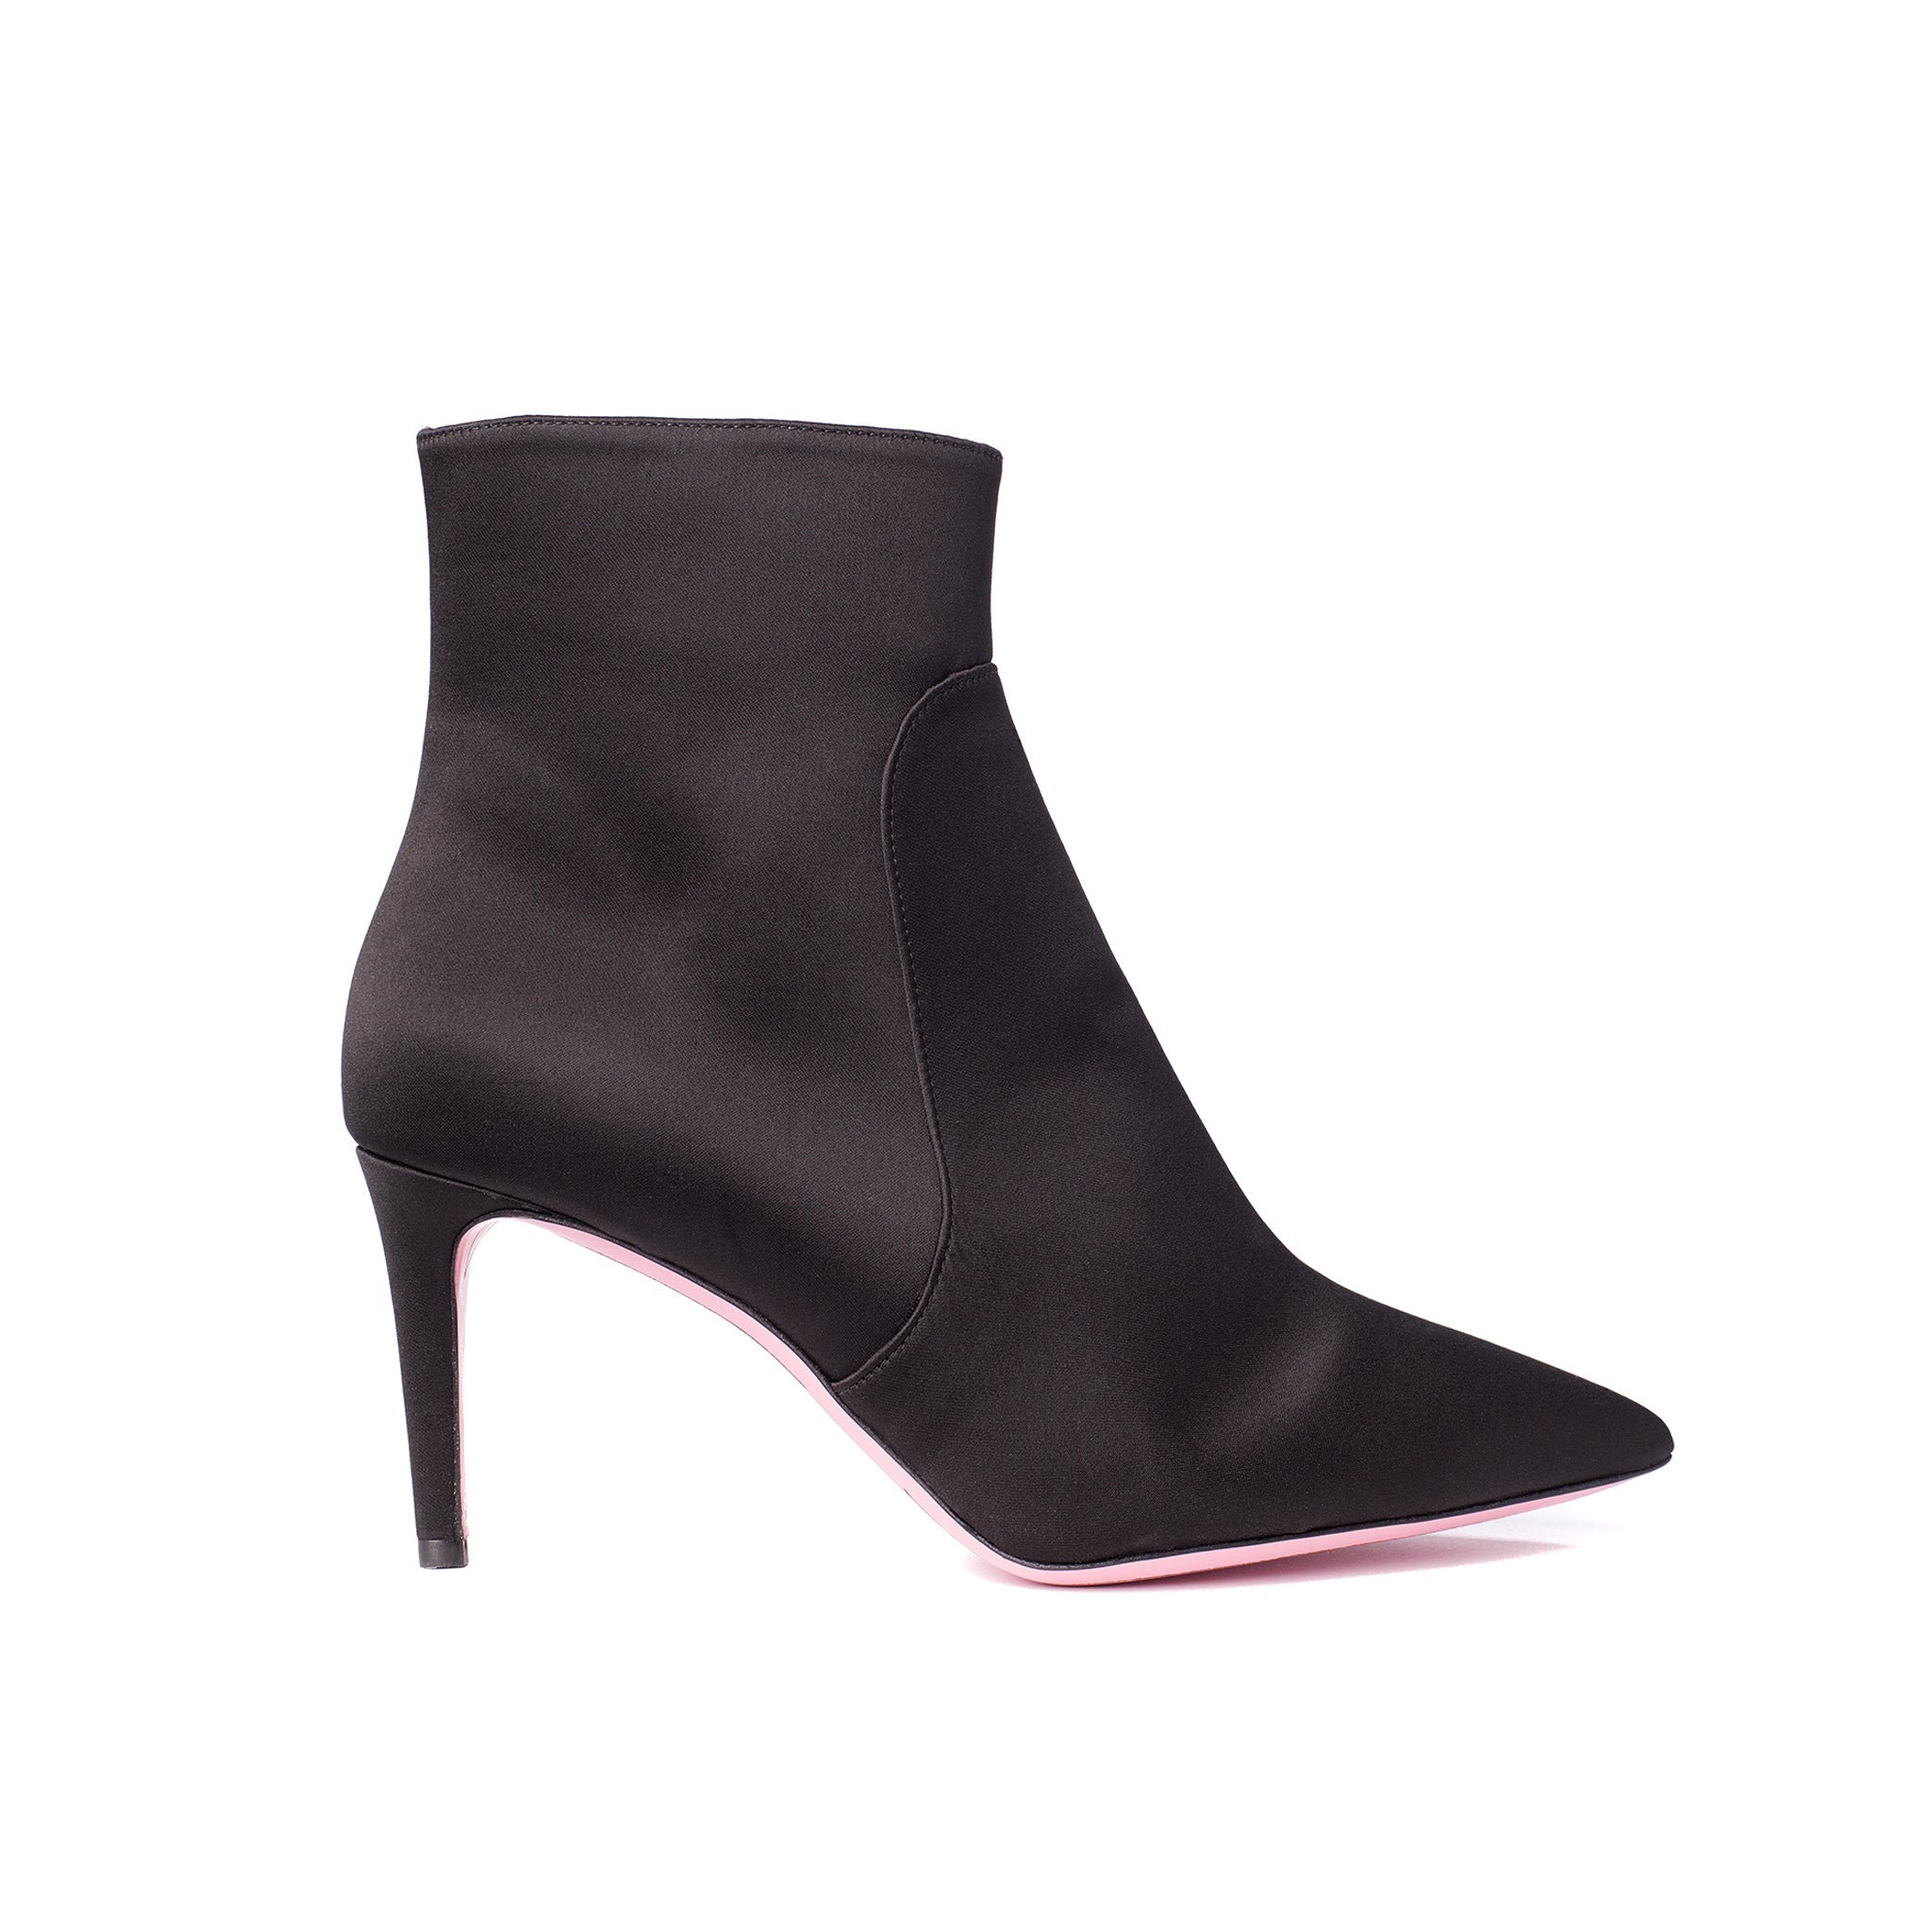 Pointed Classic heel boot